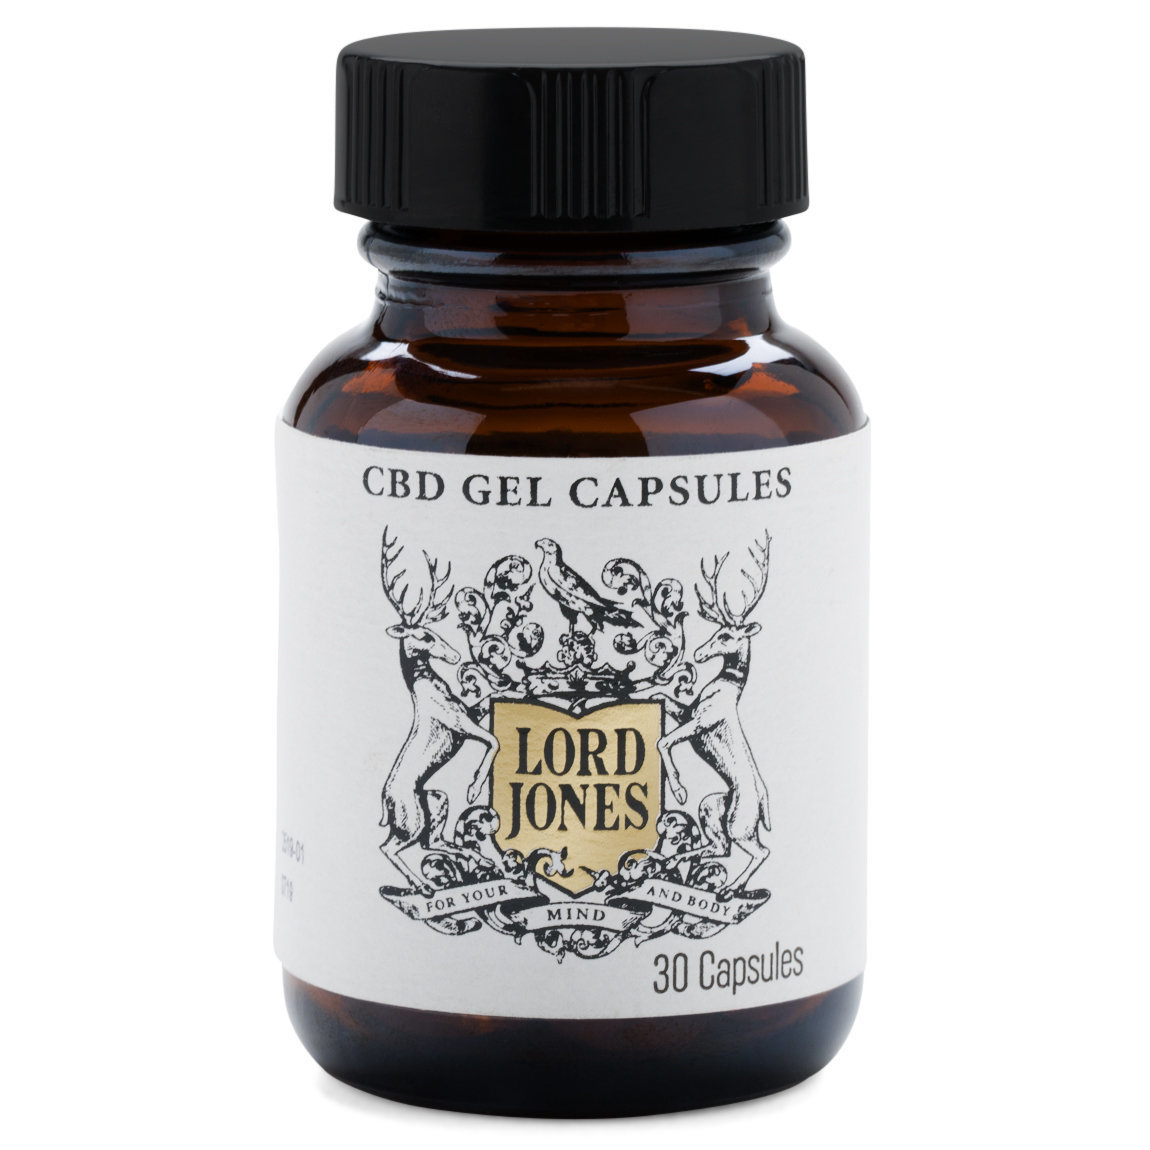 Lord Jones Gel Capsules product smear.